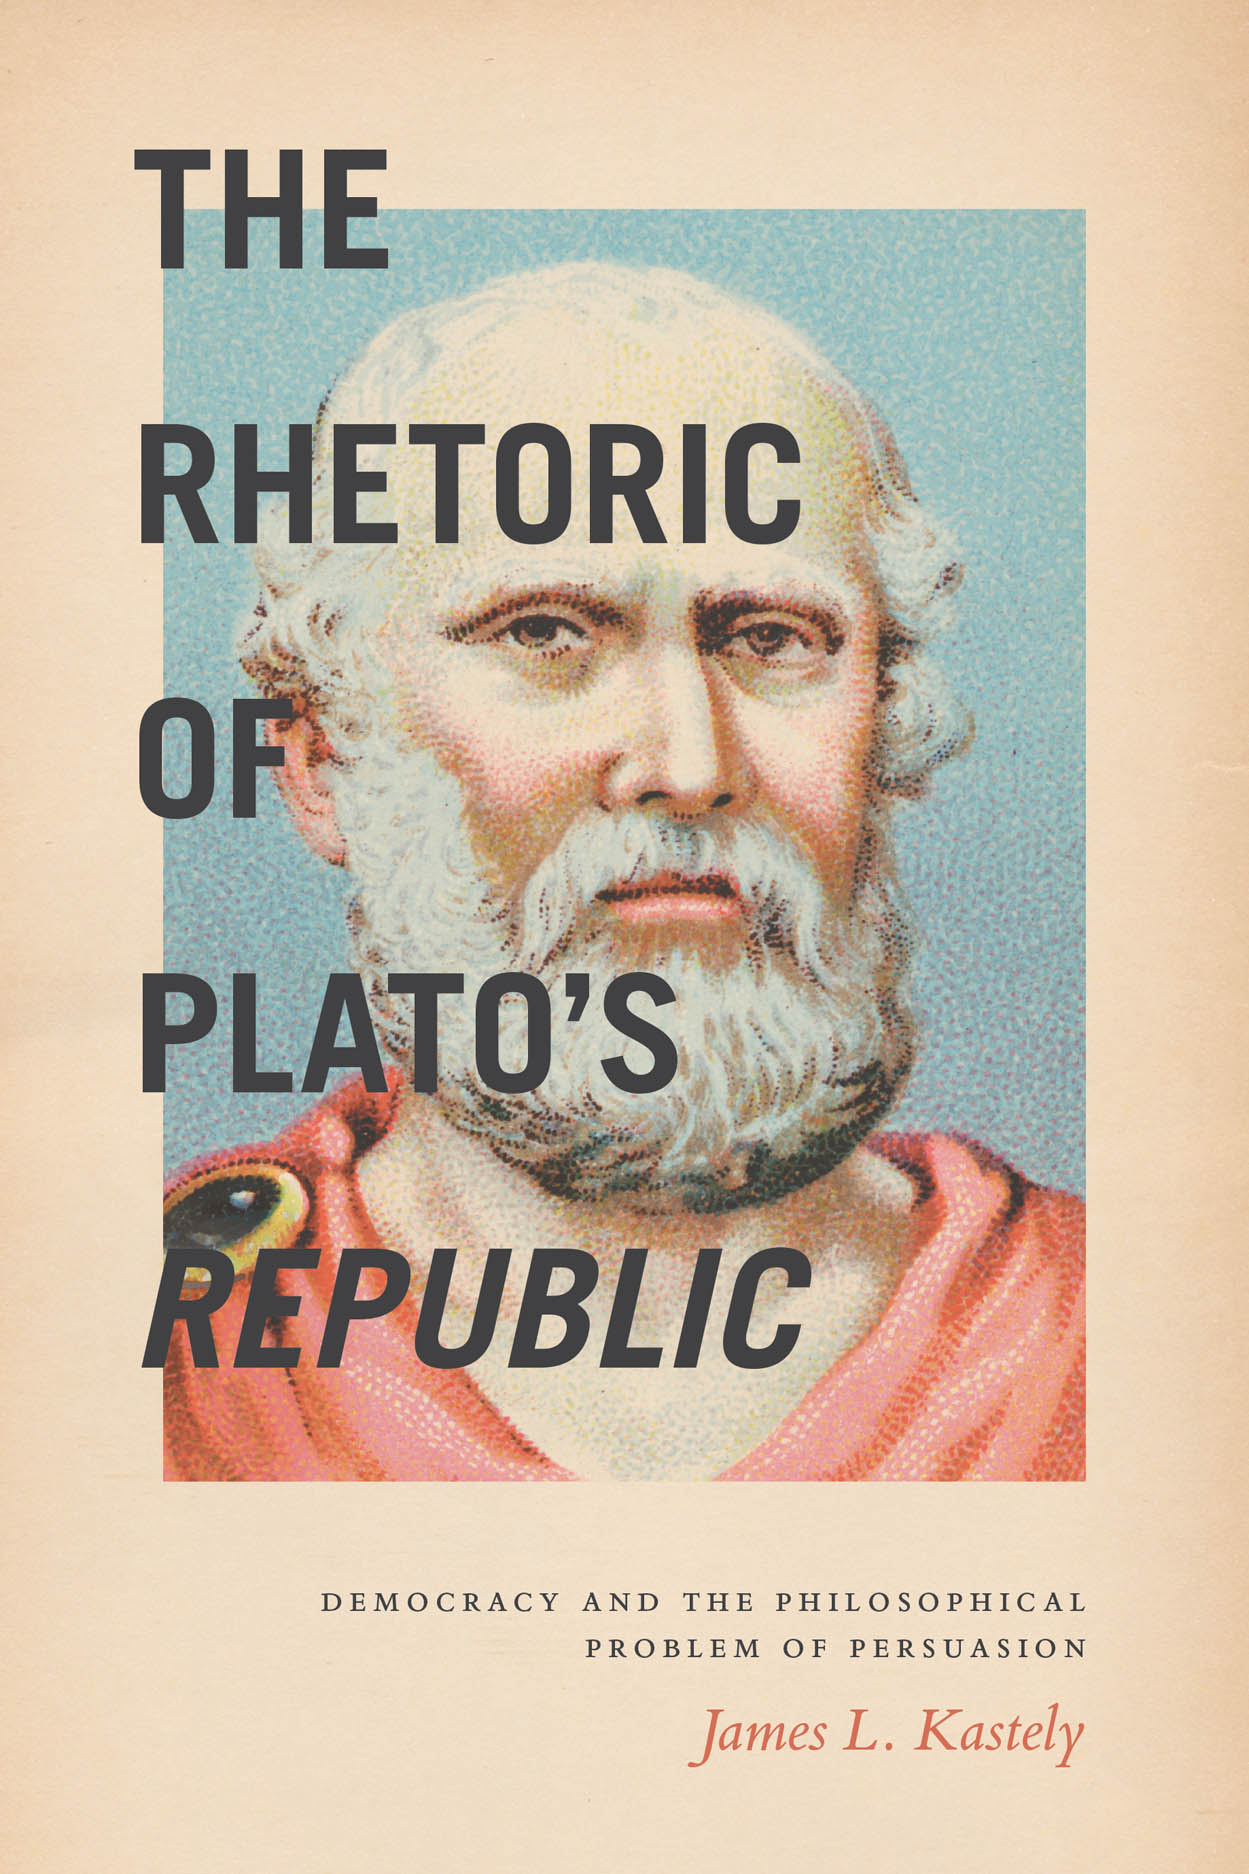 The Rhetoric of Plato's Republic: Democracy and the Philosophical Problem of Persuasion